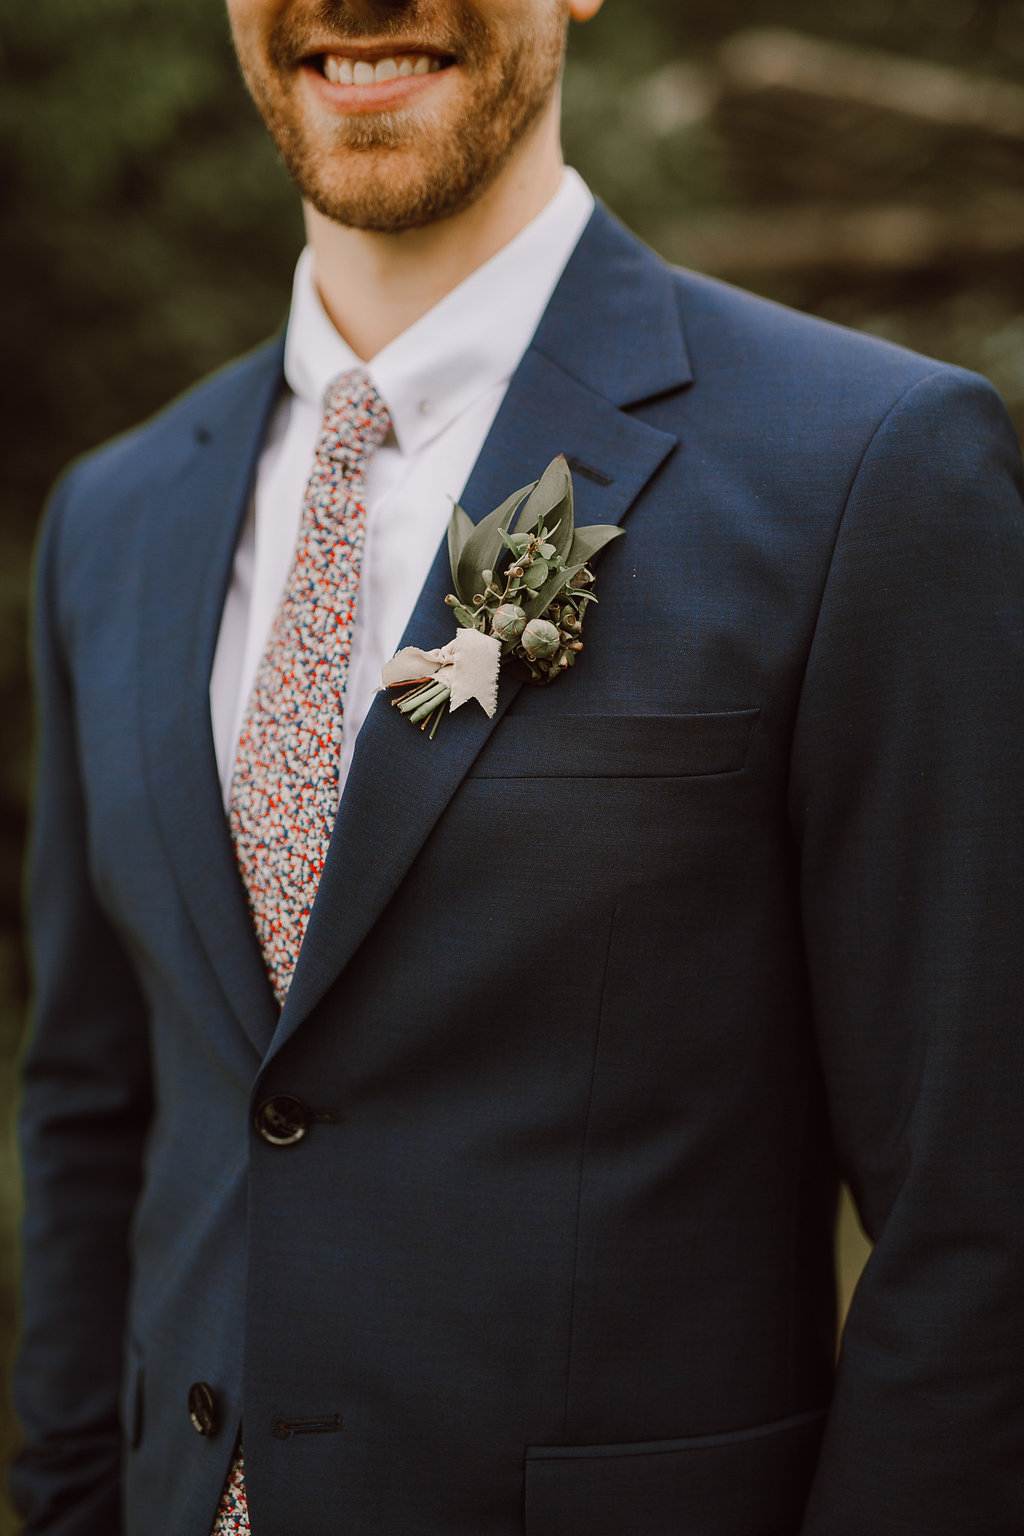 Textured Greenery Boutonniere - Organic Inspired Wedding inWinnipeg